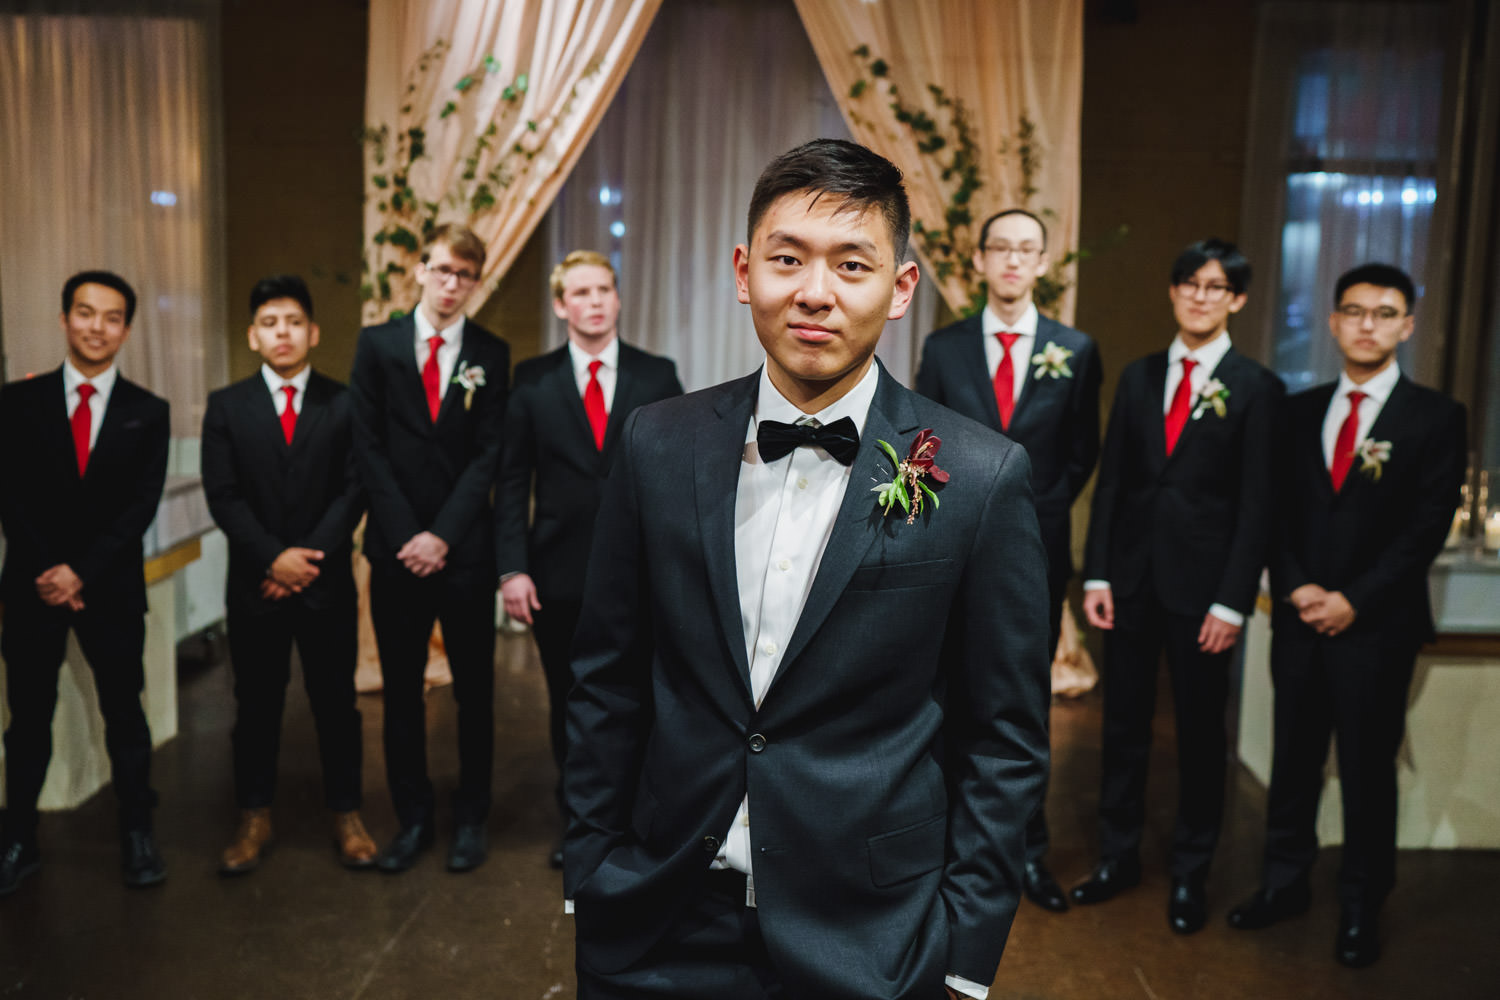 Pierpont Place wedding groom and groomsmen photo